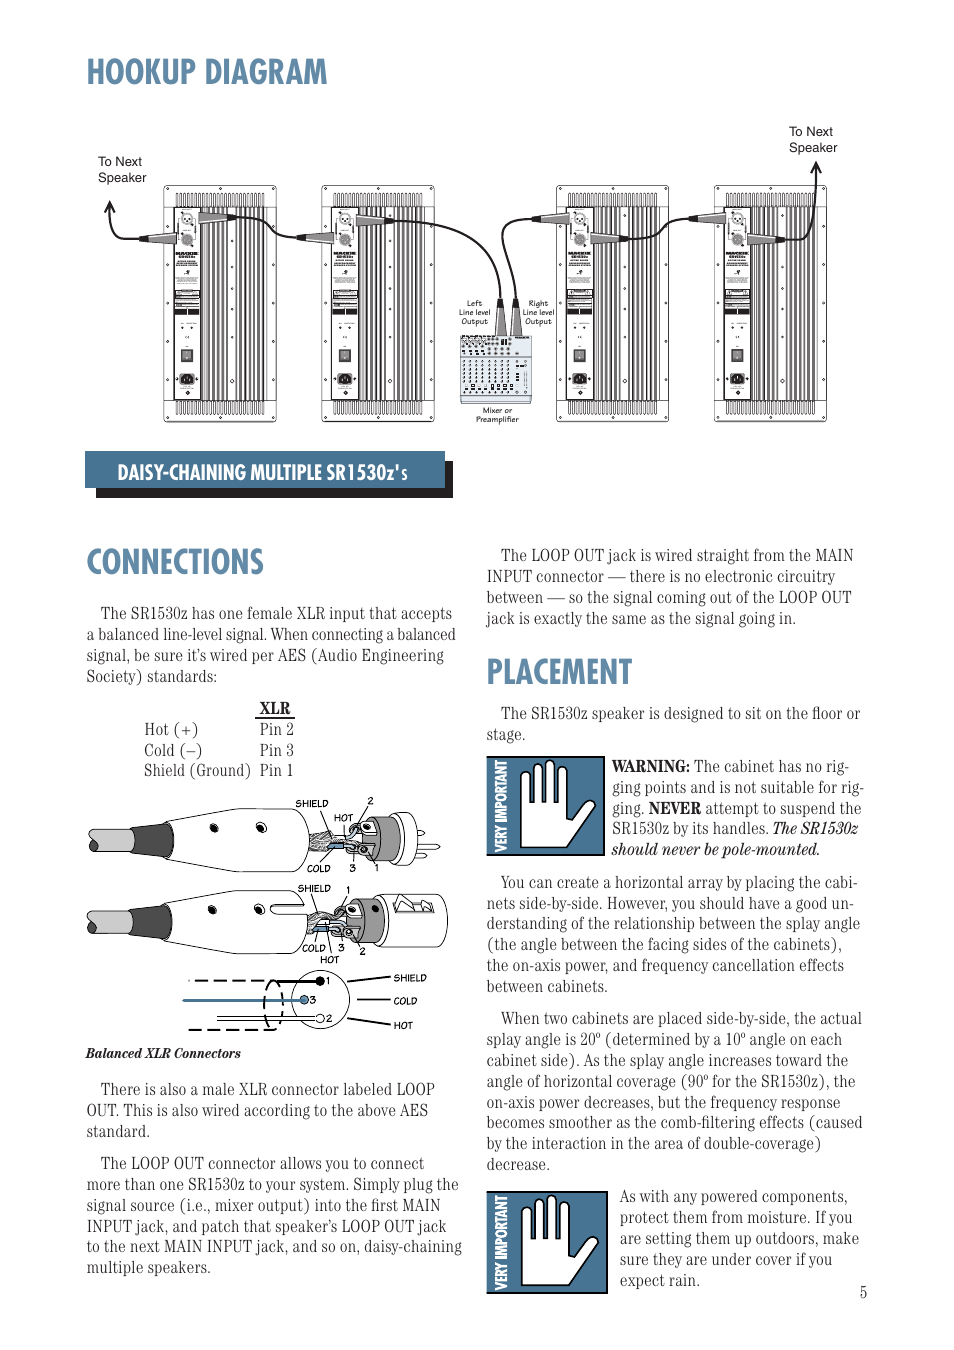 Hookup Diagram Connections Placement Mackie Sr1530z User Manual Schematic Balanced Xlr To Page 5 12